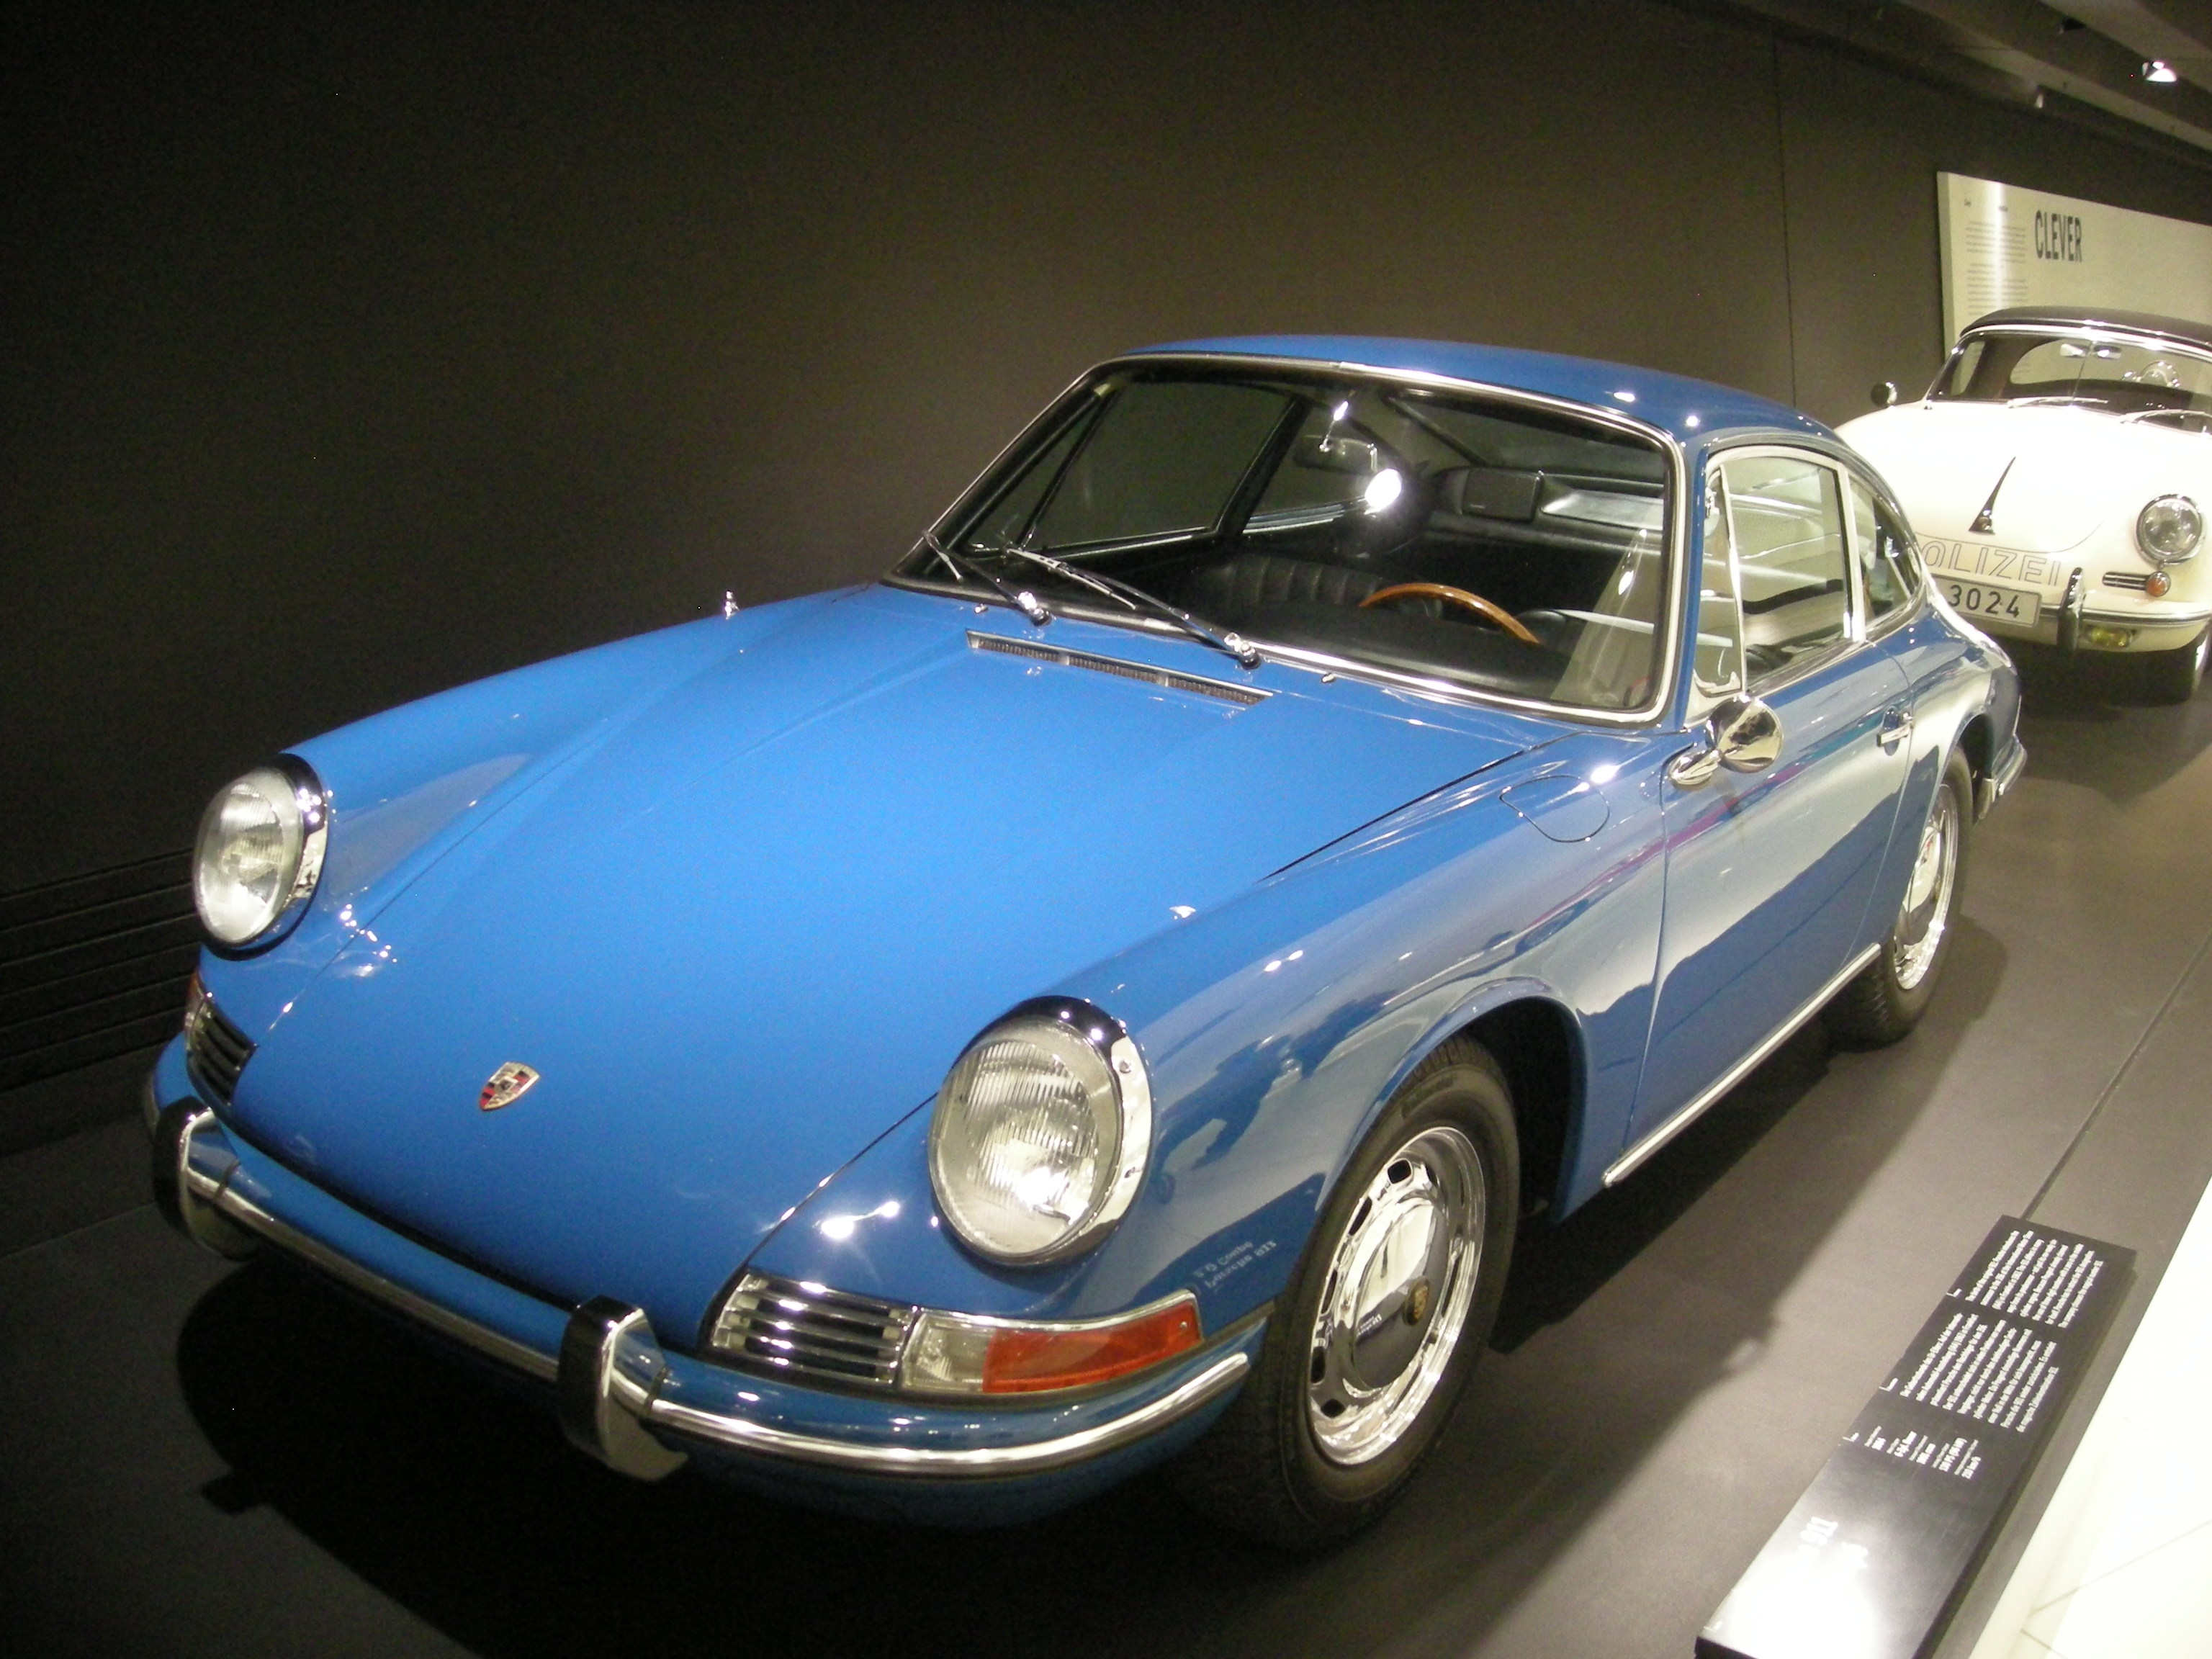 Porsche 911 Classic Wikipedia 1973 Fuel Pump A 1964 20 Coupe Inside The Museum